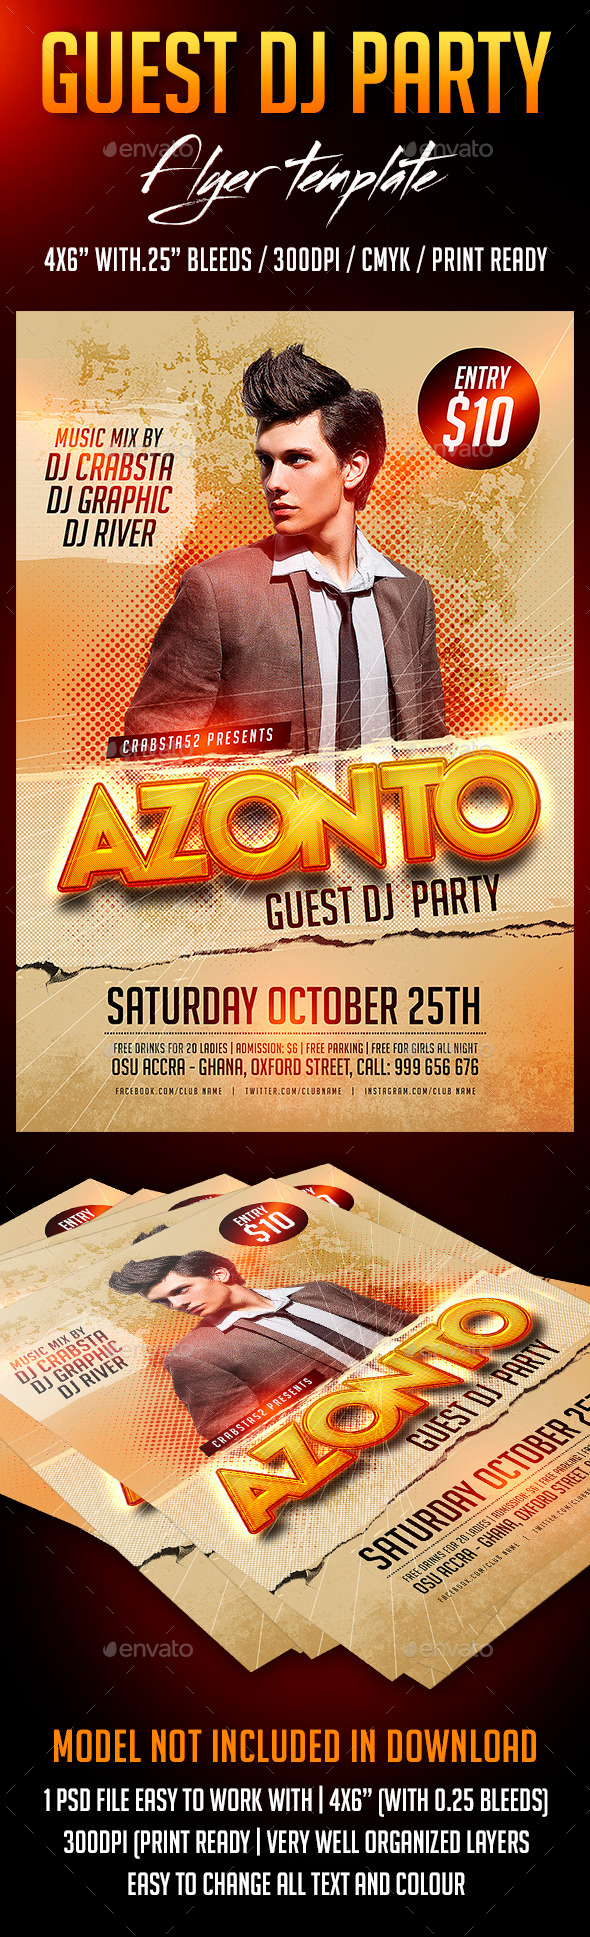 GraphicRiver Guest Dj Party Flyer Template 8829660